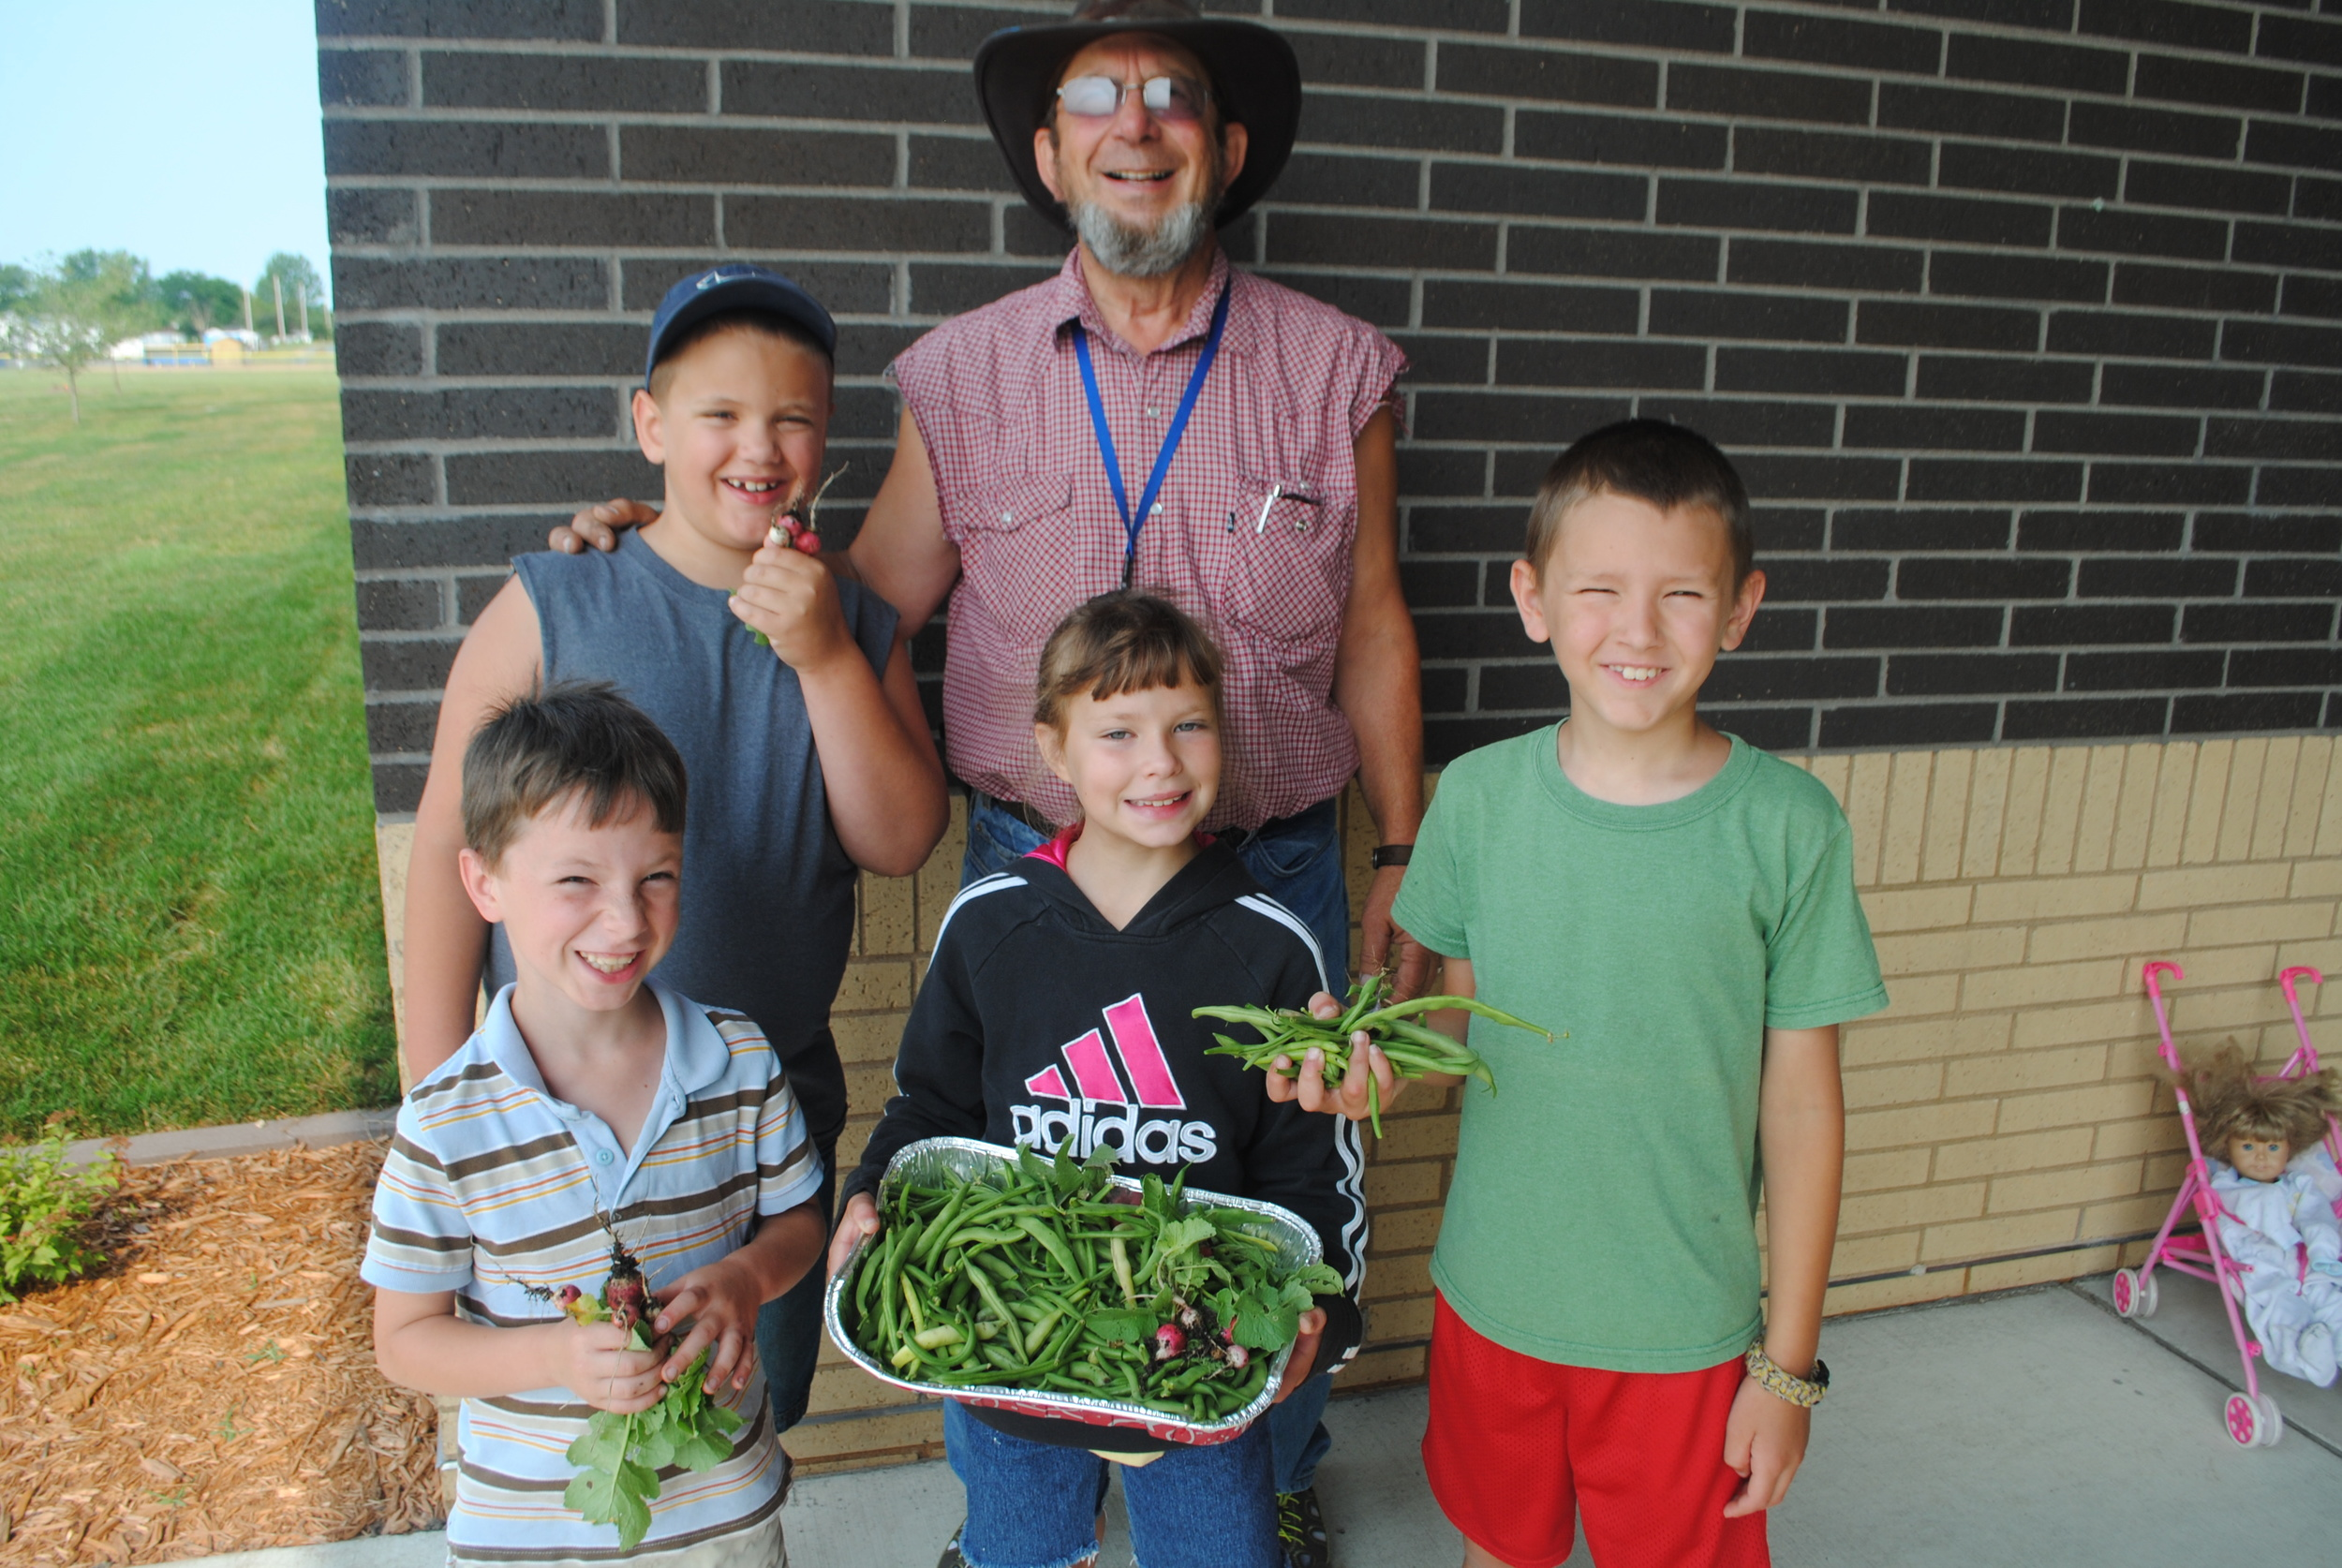 """These kids picked and delivered fresh green beans and radishes to the elementary school recently as part of a gardening class. Front, from left: Diego Shaw, Mia Shaw and Colby Schmid; back row, from left: Carter Worden and Ed Lewis, instructor. """"Harvest Time at the School Garden"""" is sponsored by WDC-B Community Education. (Photos by Dana Pavek, WDC Schools)"""